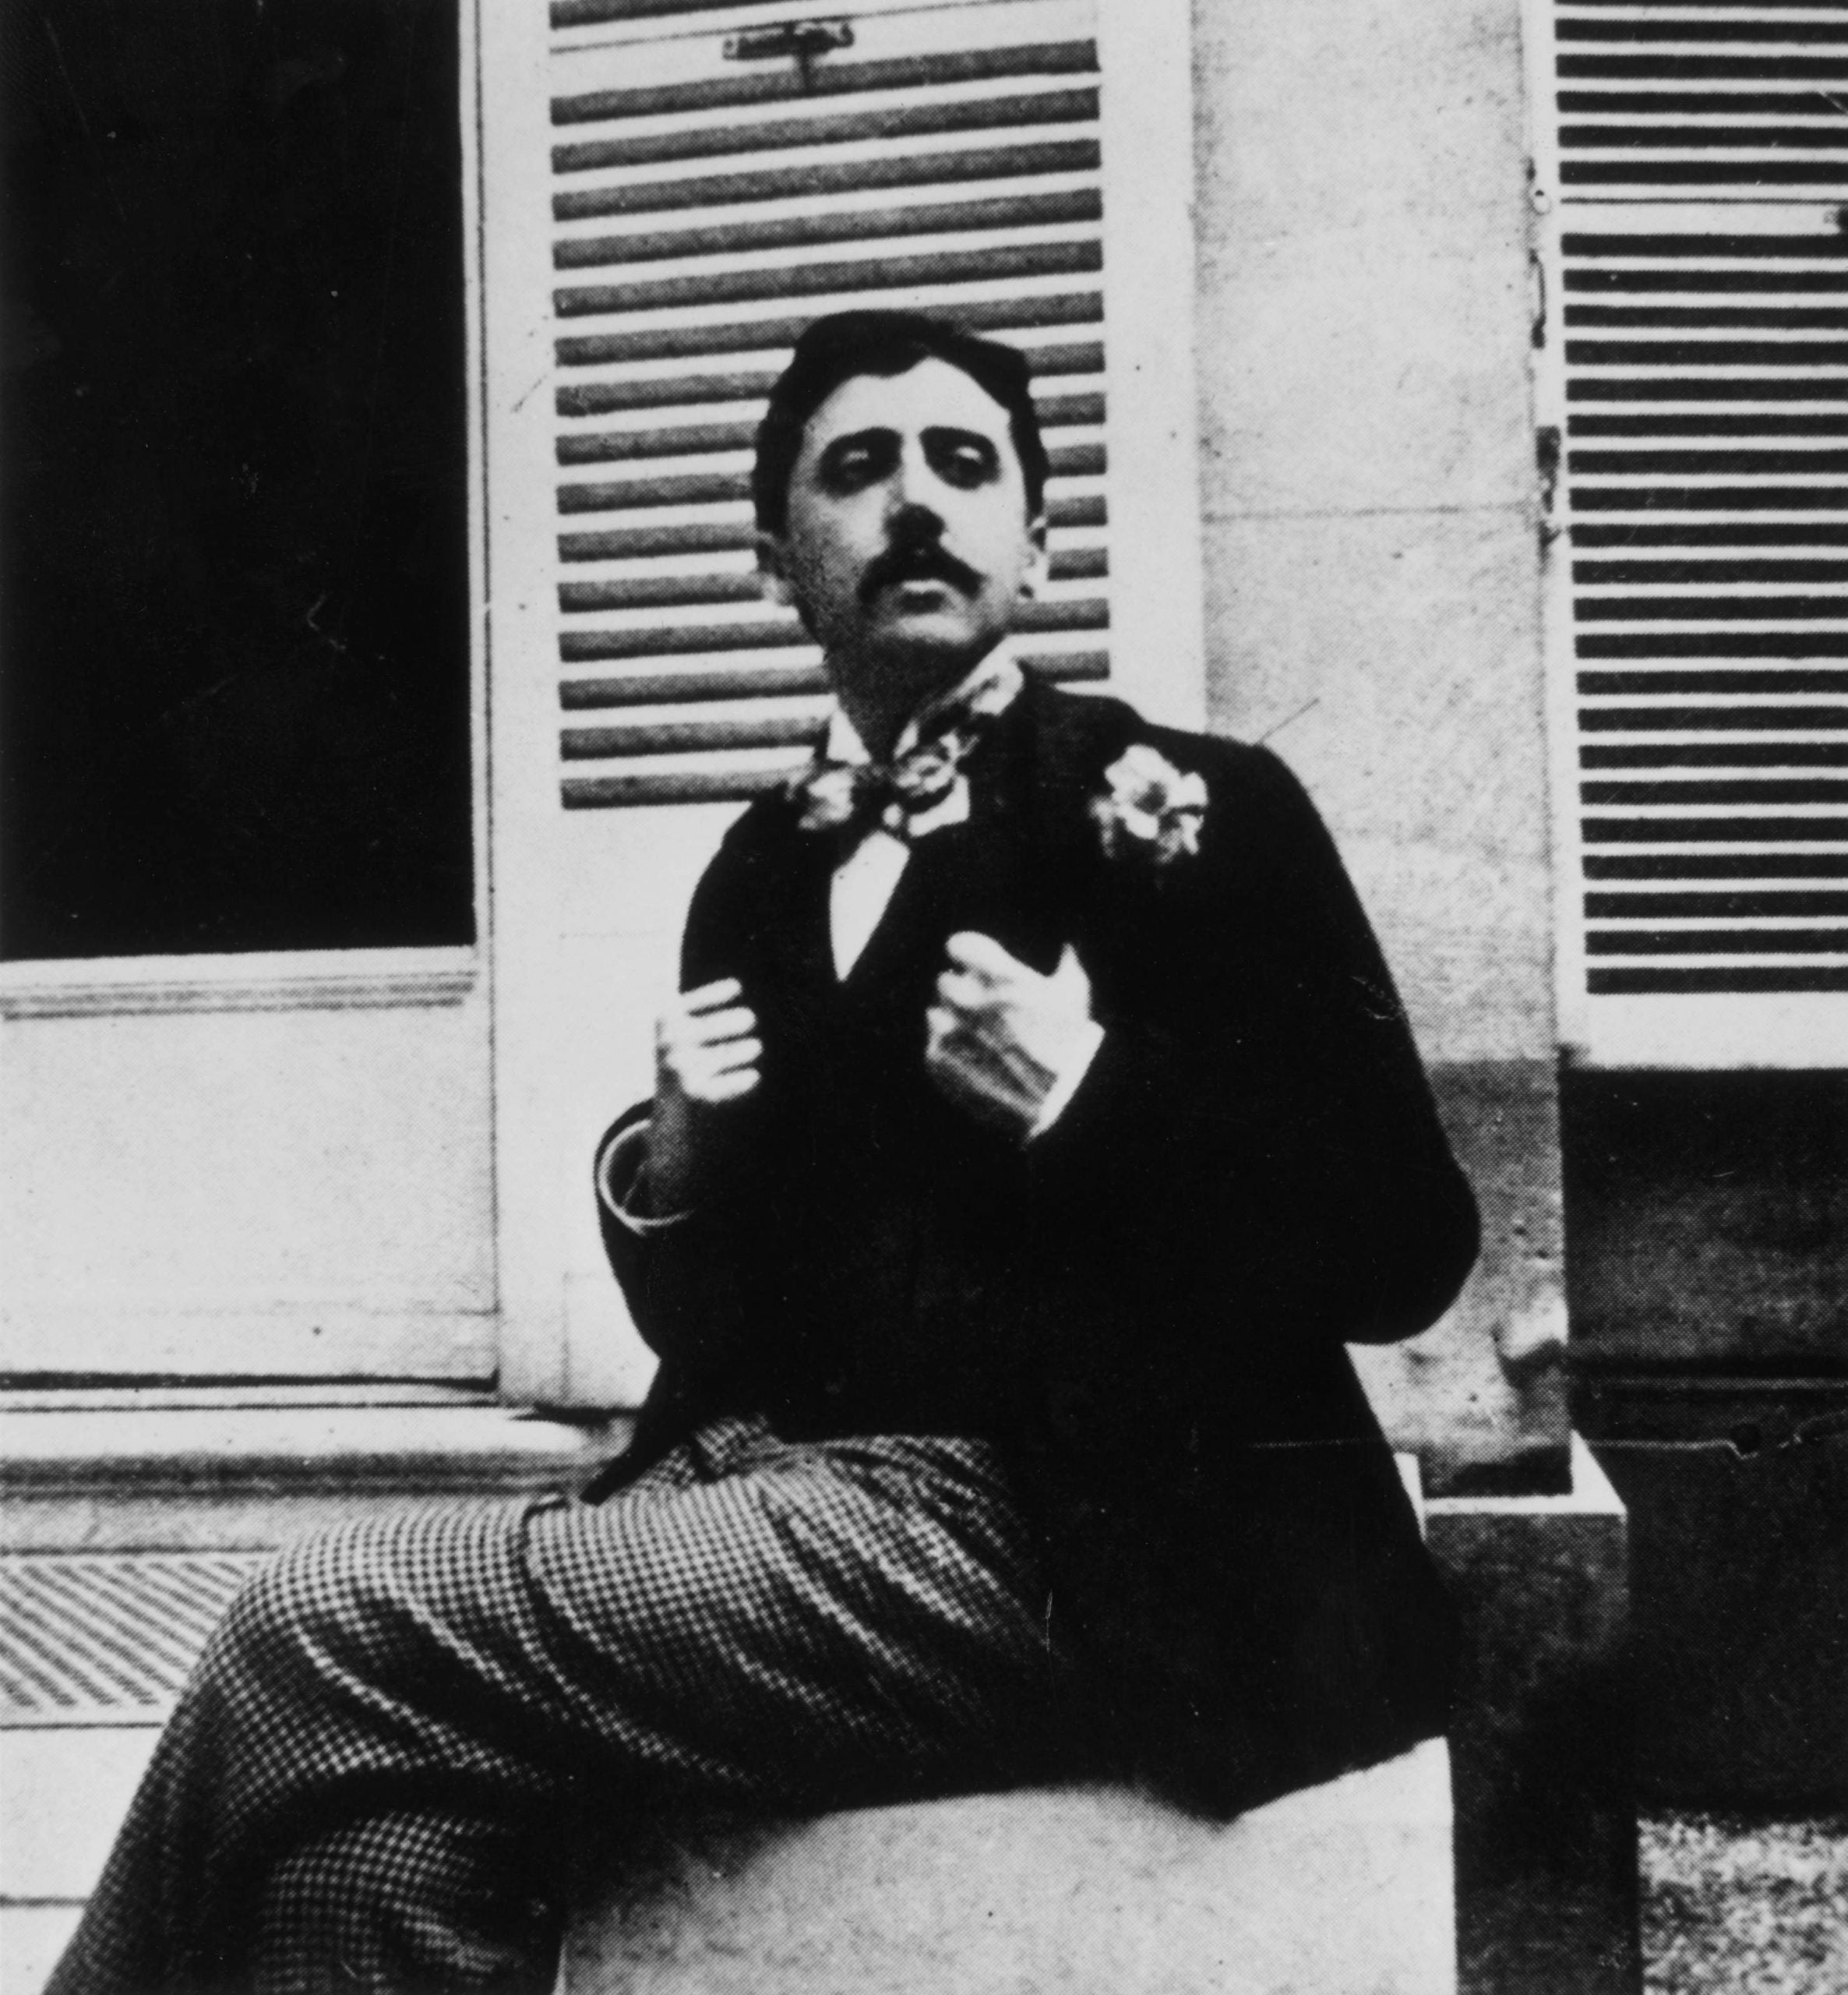 Proust's rat fetish, Nigel's failed foray into pop – and Brexit penetrates the TLS